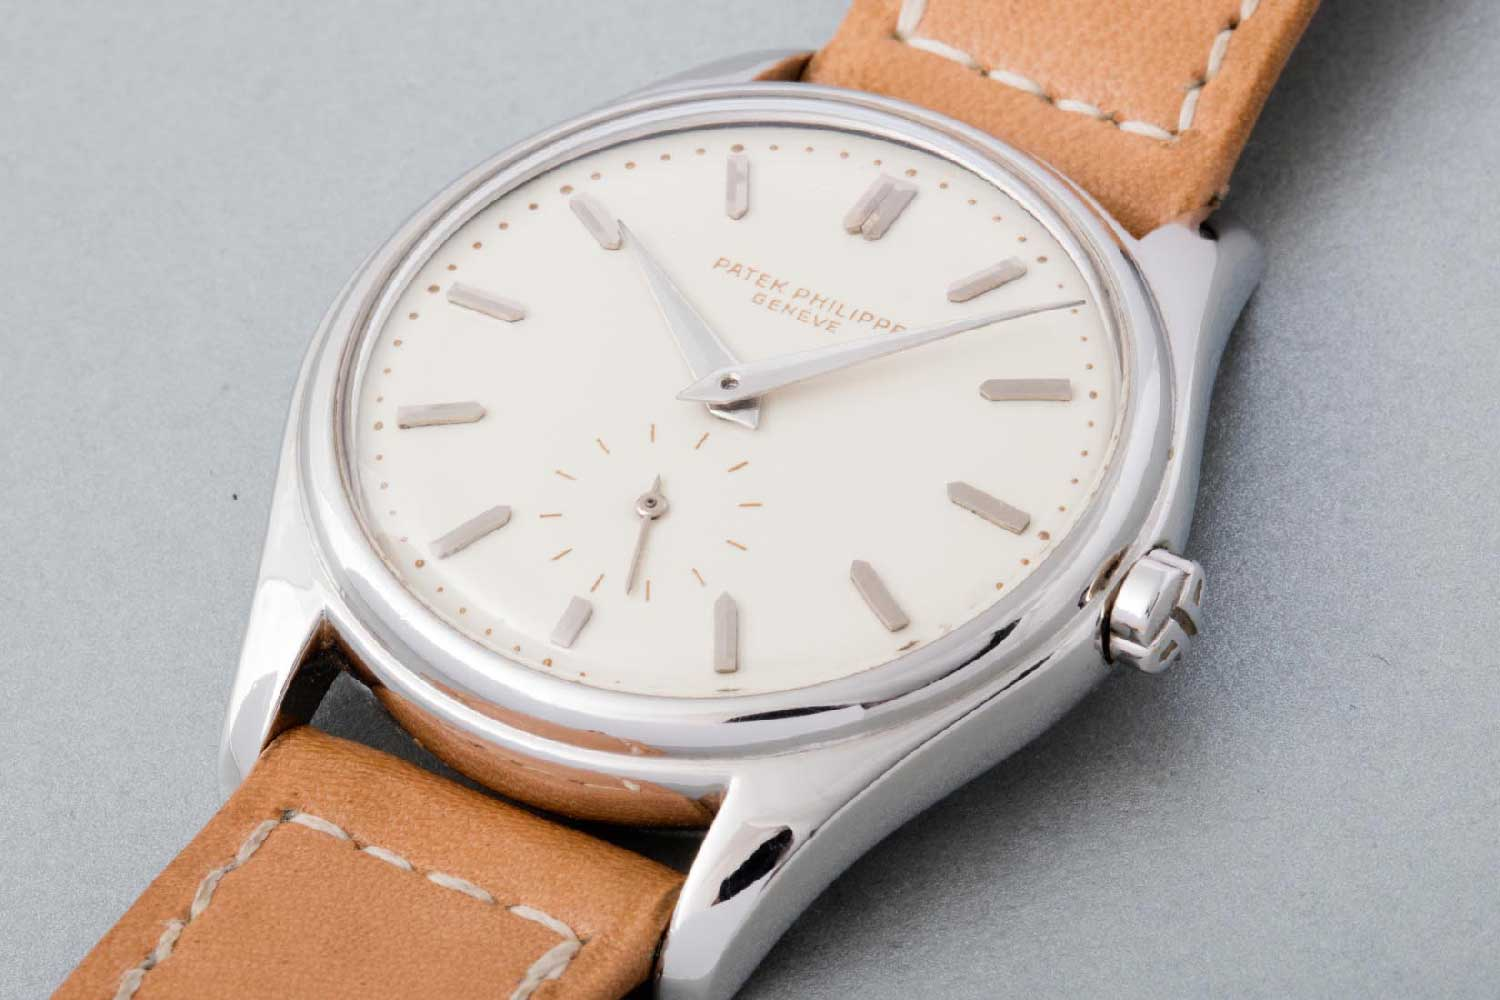 The landmark ref. 2526 equipped with the brand's first self-winding movement, the 12-600 AT (Image: Phillips)